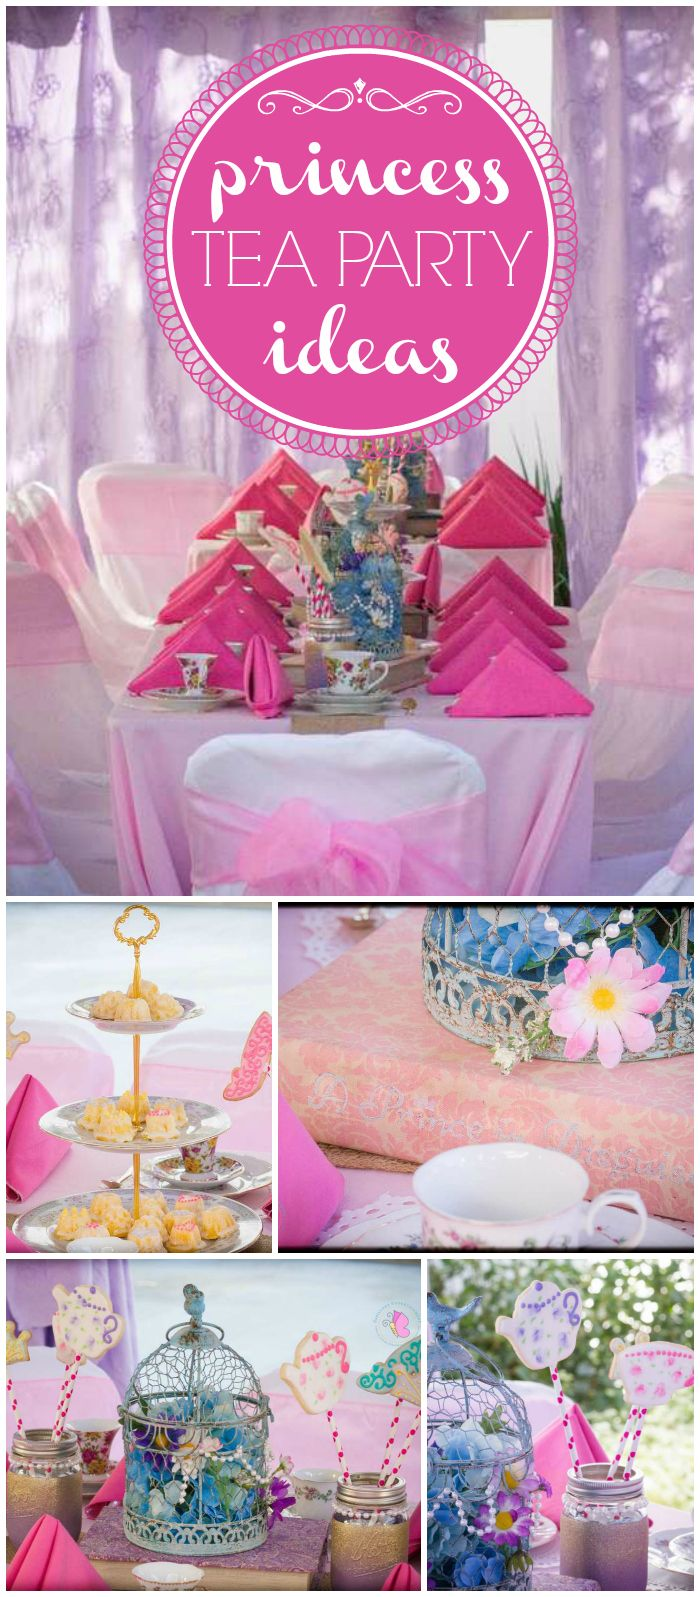 An incredible fairytale princess tea party in lavender, carnation pink and sky blue! See more party planning ideas at CatchMyParty.com!